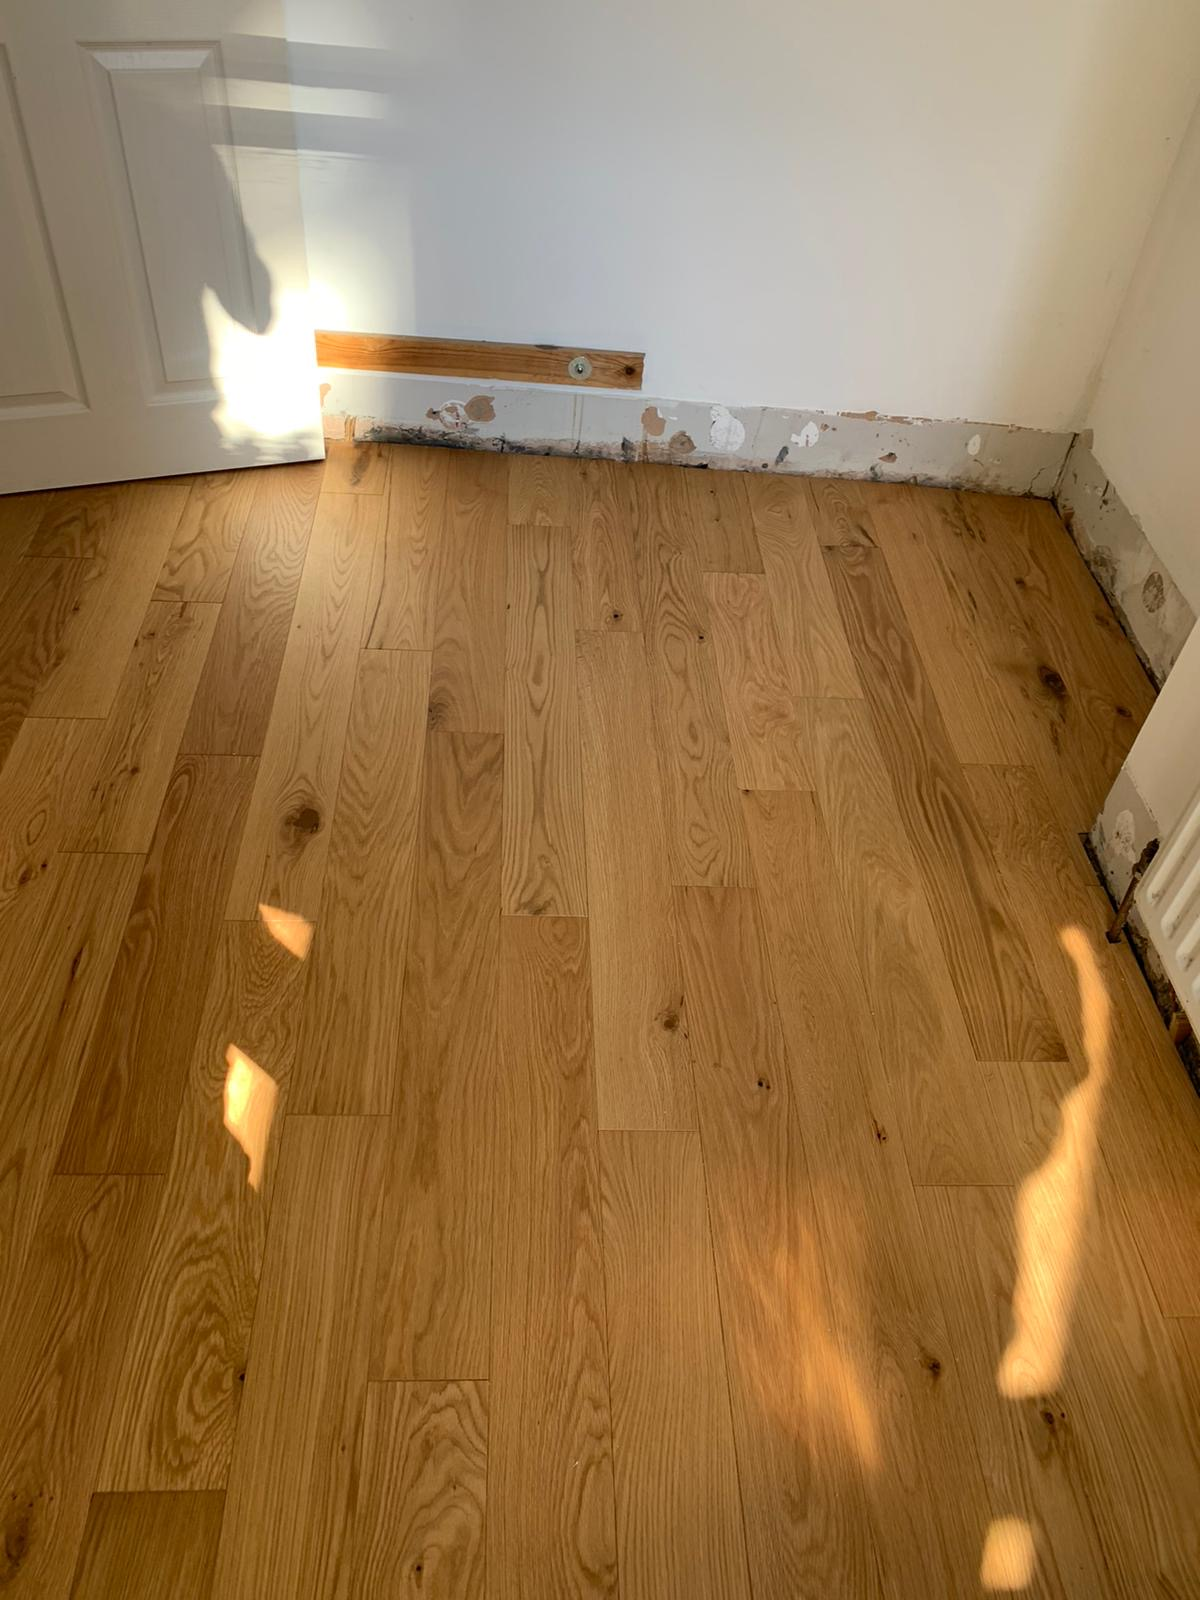 Furlong Next Step 21001 Wood Flooring 1